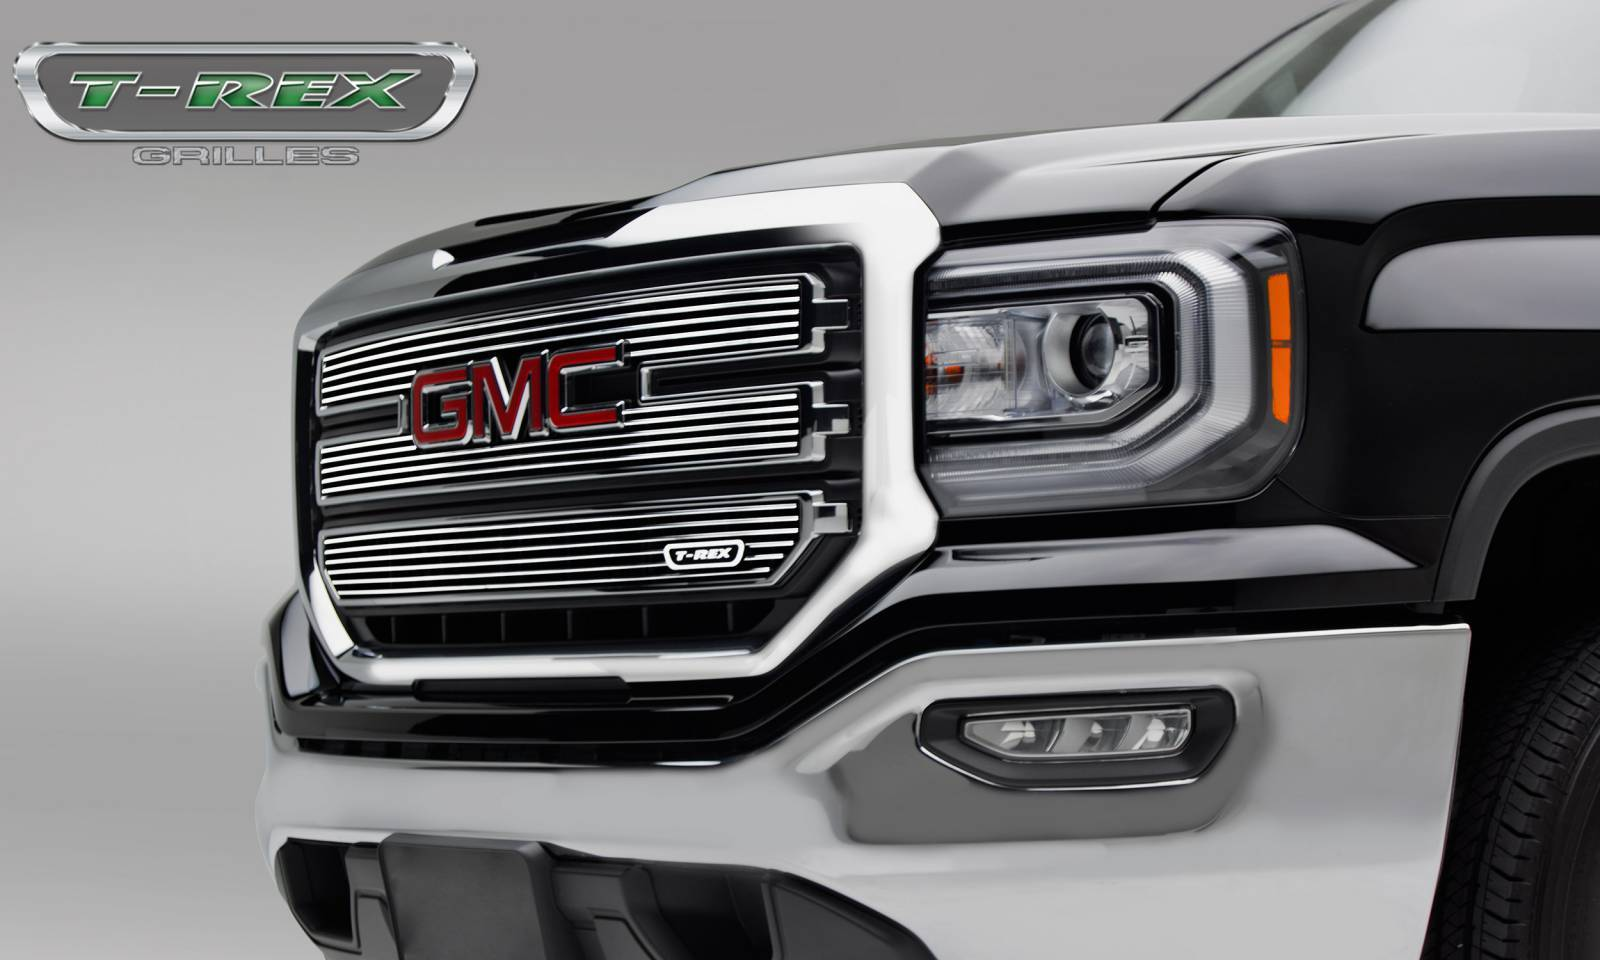 GMC Sierra 1500 SLE - Laser Billet Main Grille - 3 PC Overlay - Polished - Pt # 6212130